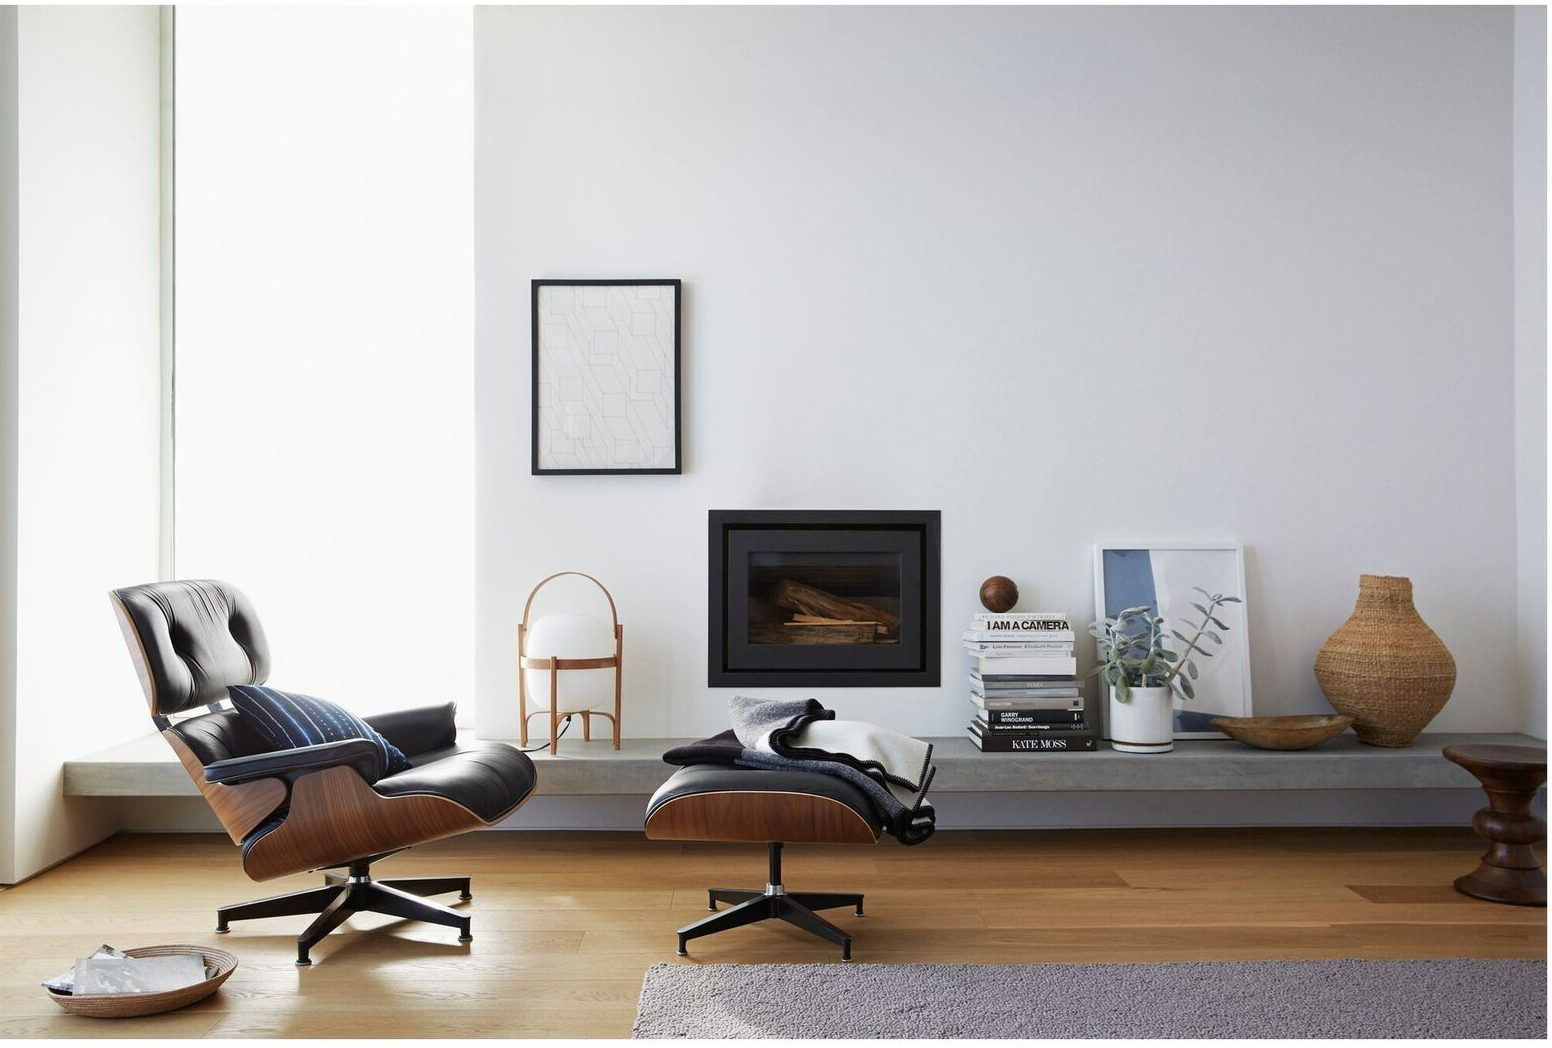 lounge style designer chairs eames photograph of chair lounger the ottoman and category furniture